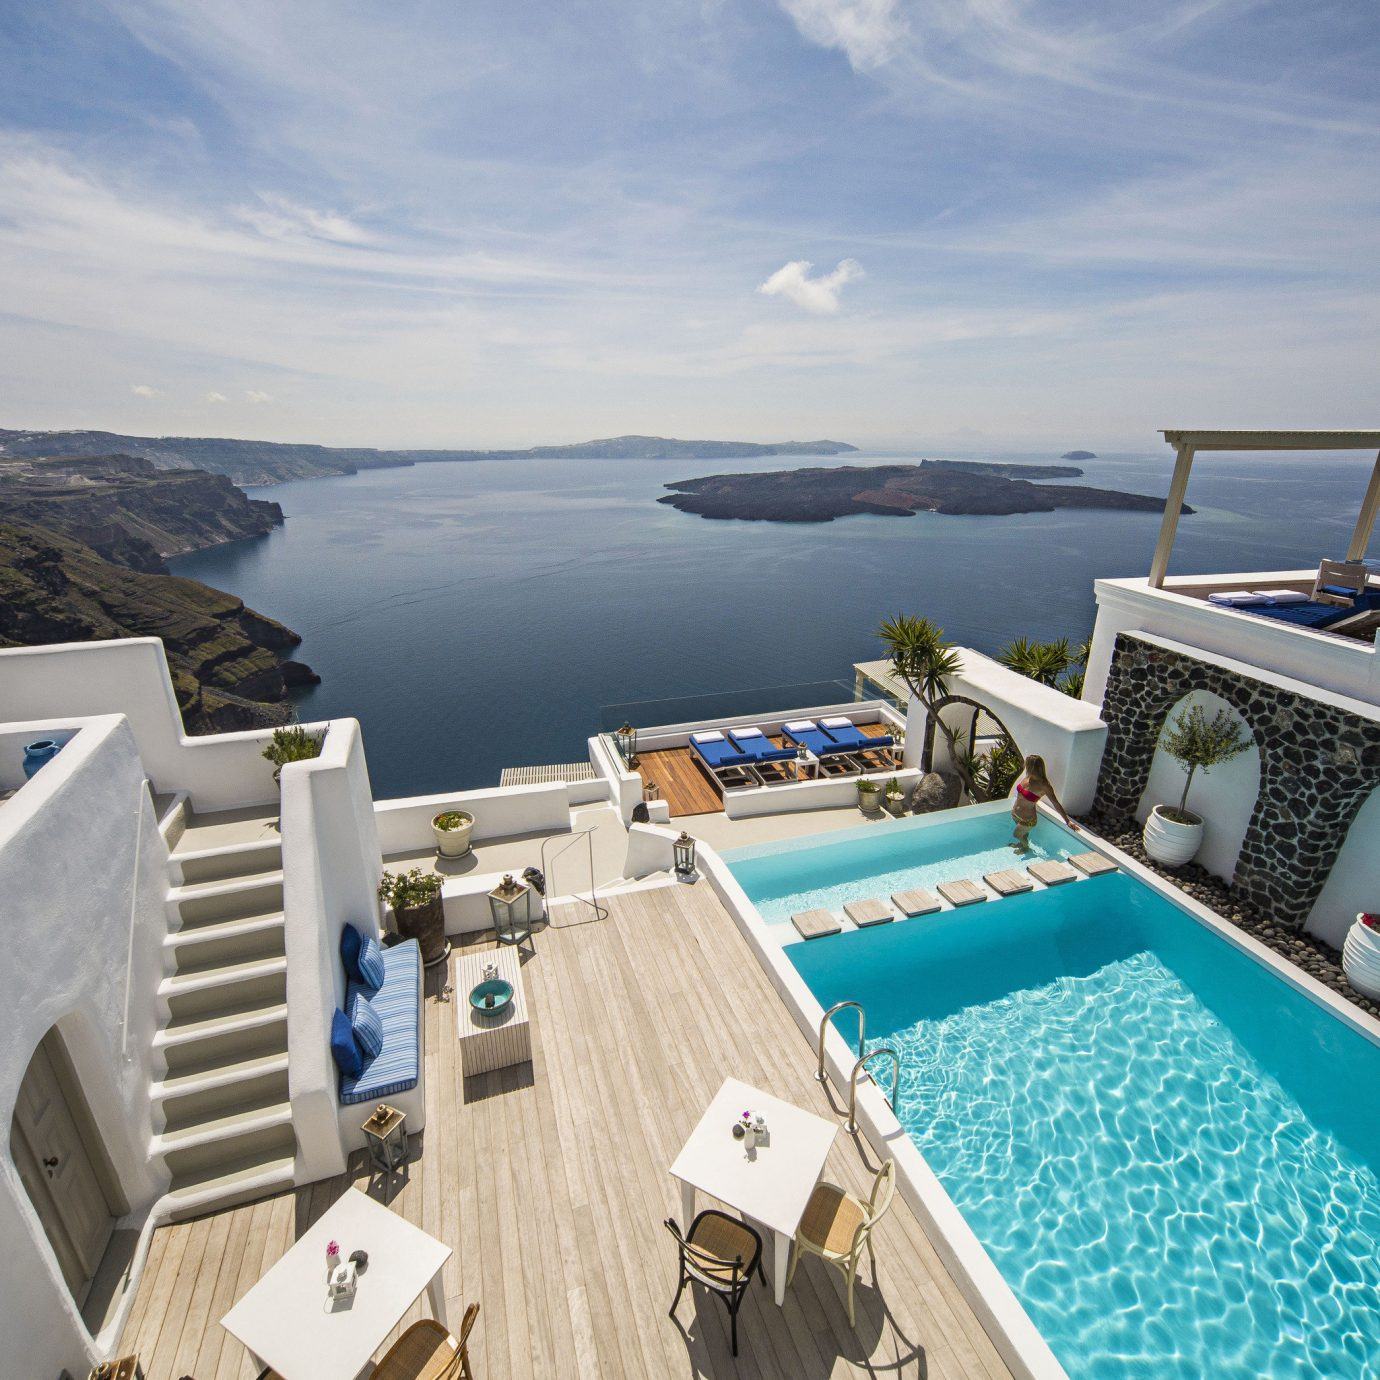 The Best Honeymoon Hotels In Santorini